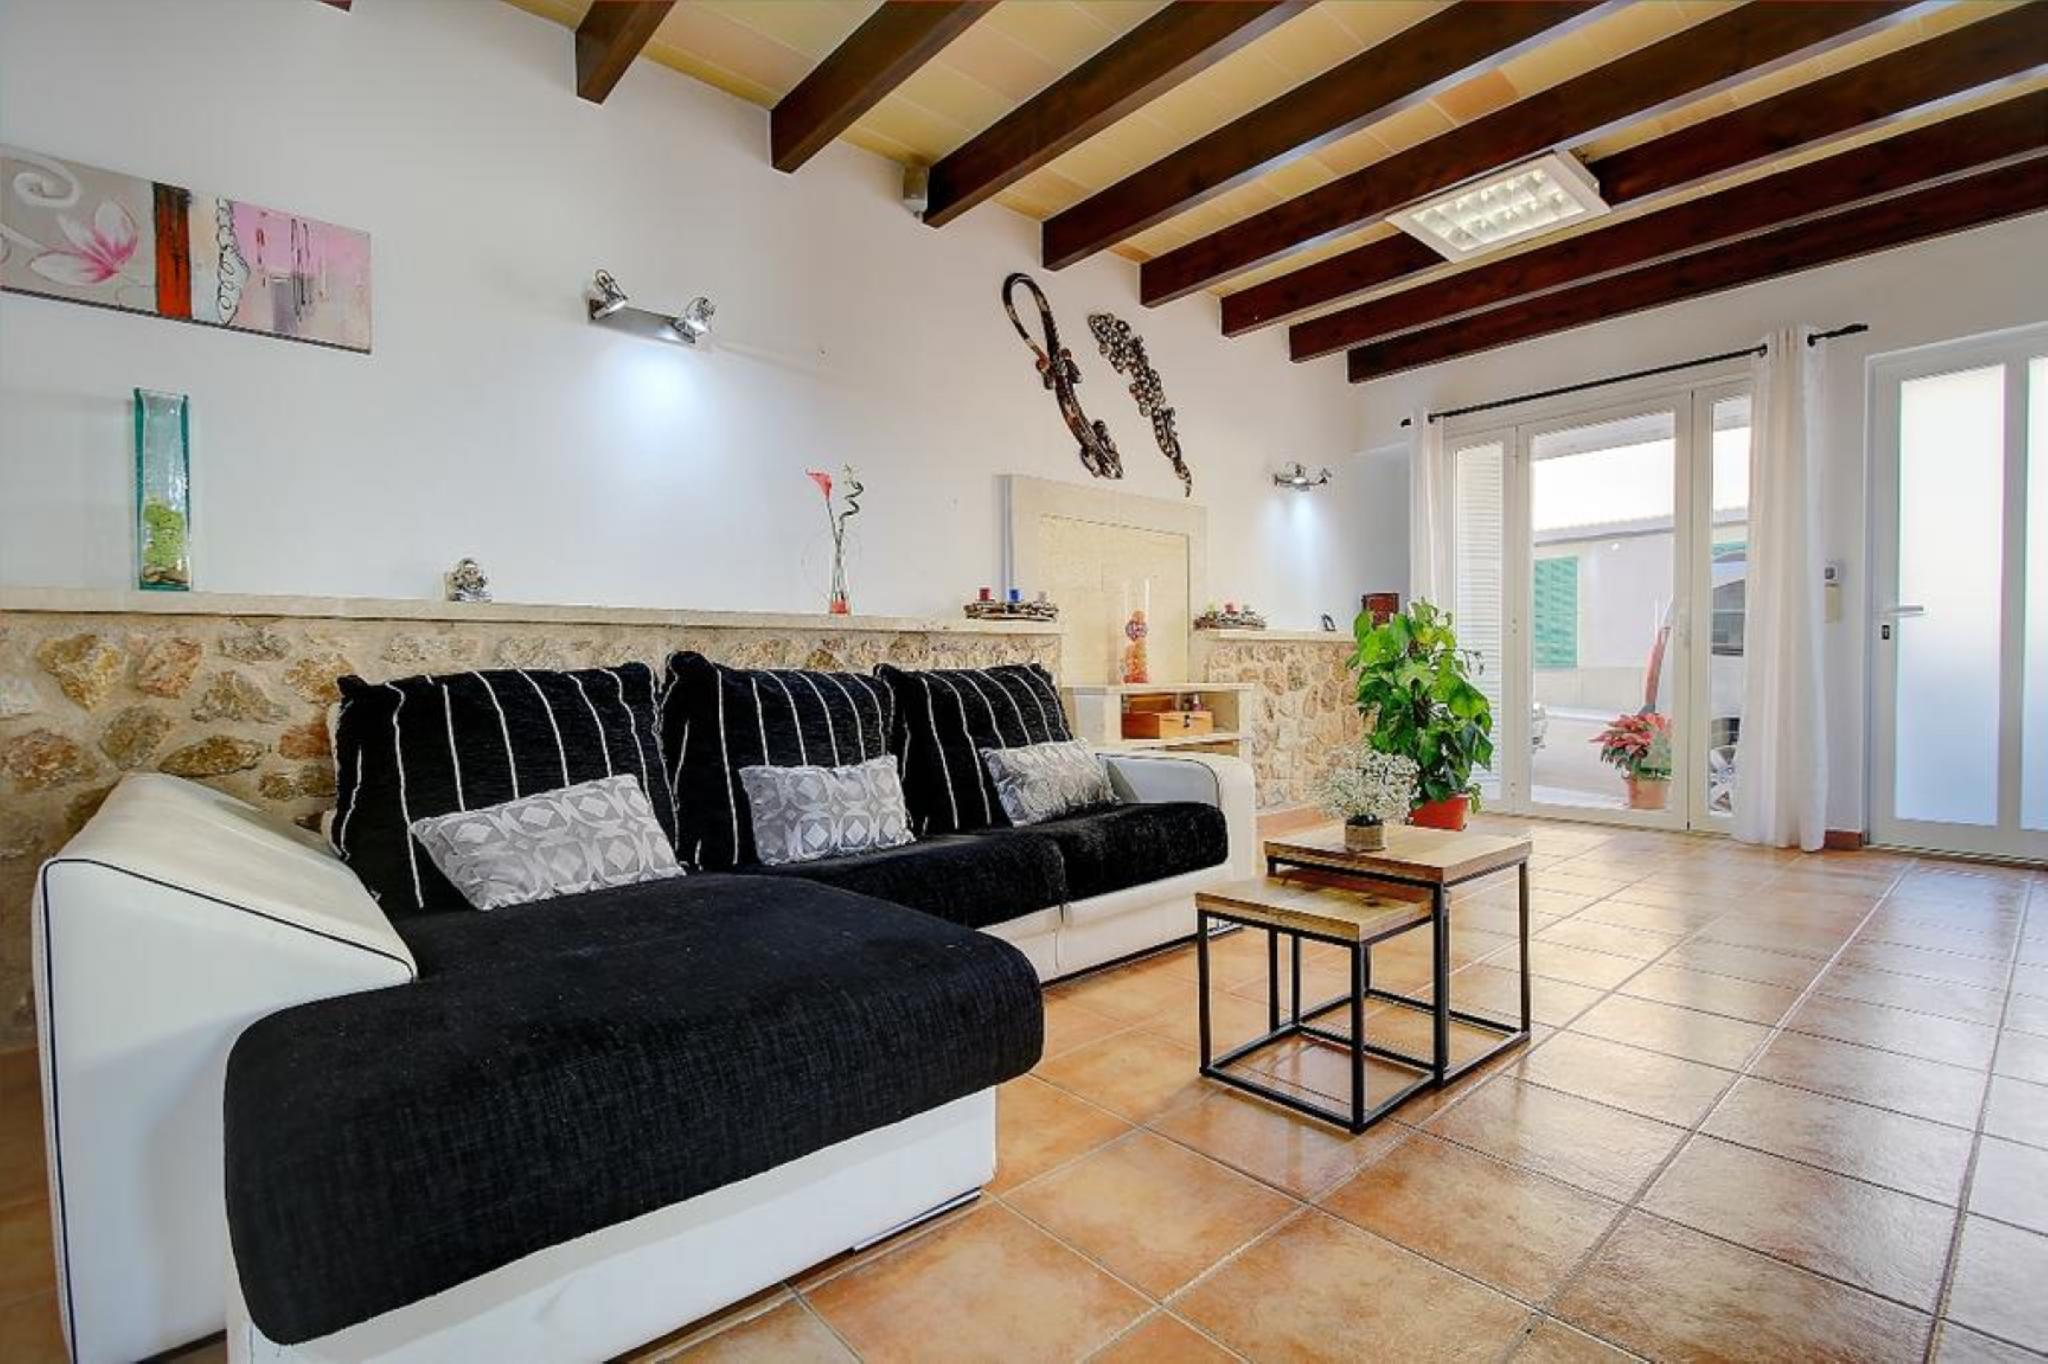 107506 - House in Ariany